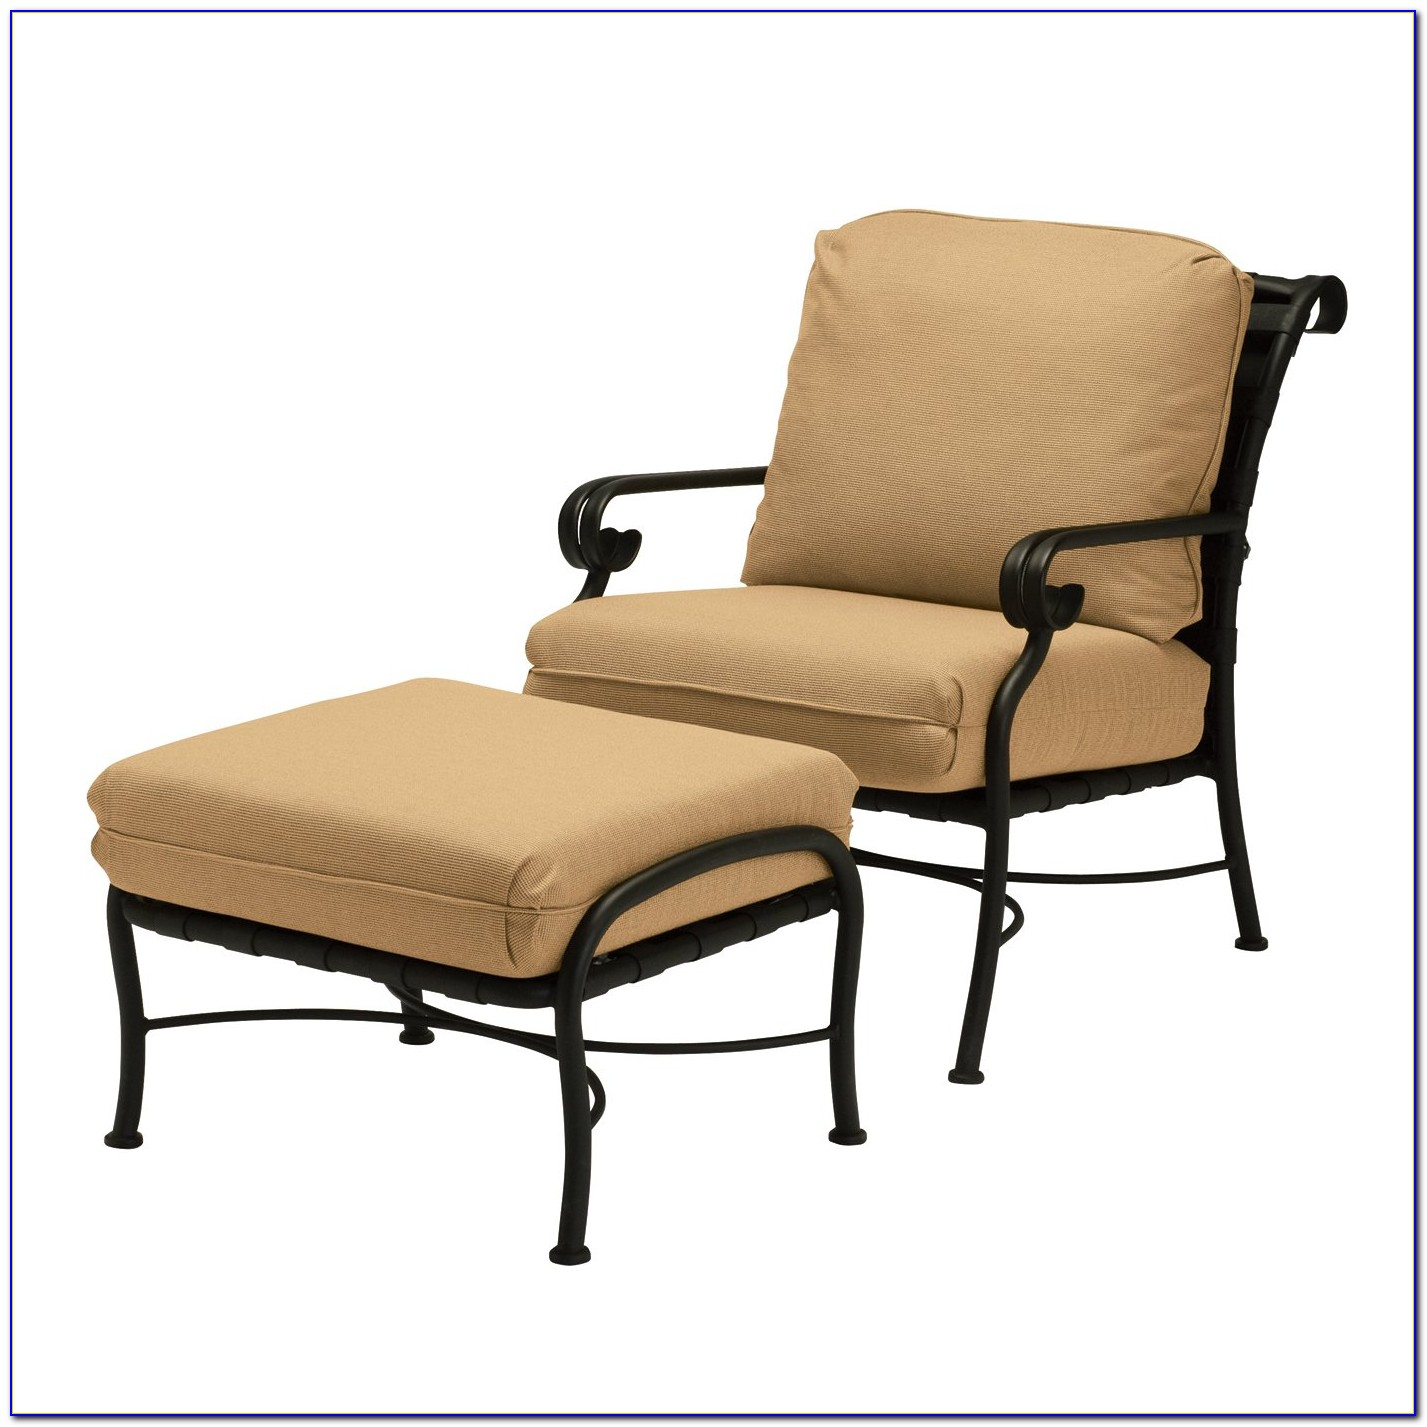 Outdoor Chair With Hidden Ottoman